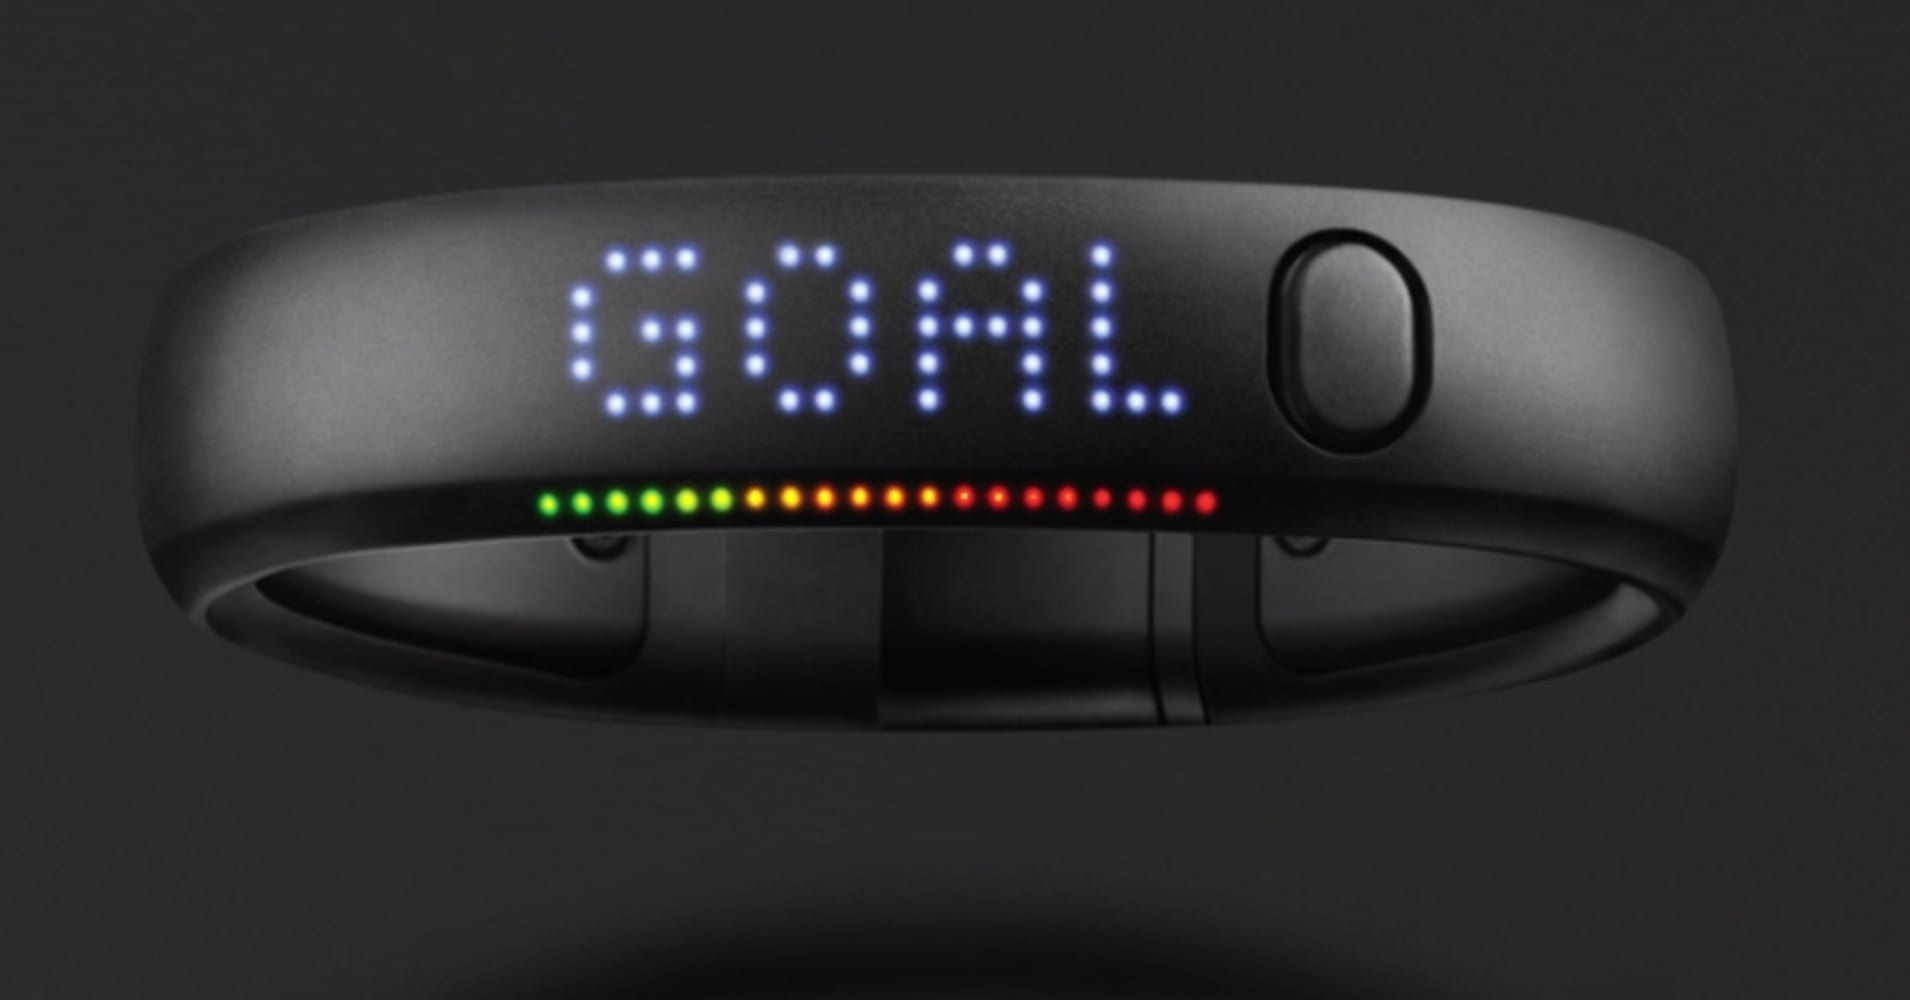 pictures The Latest Nike FuelBand is Still Kind of a Glorified Pedometer